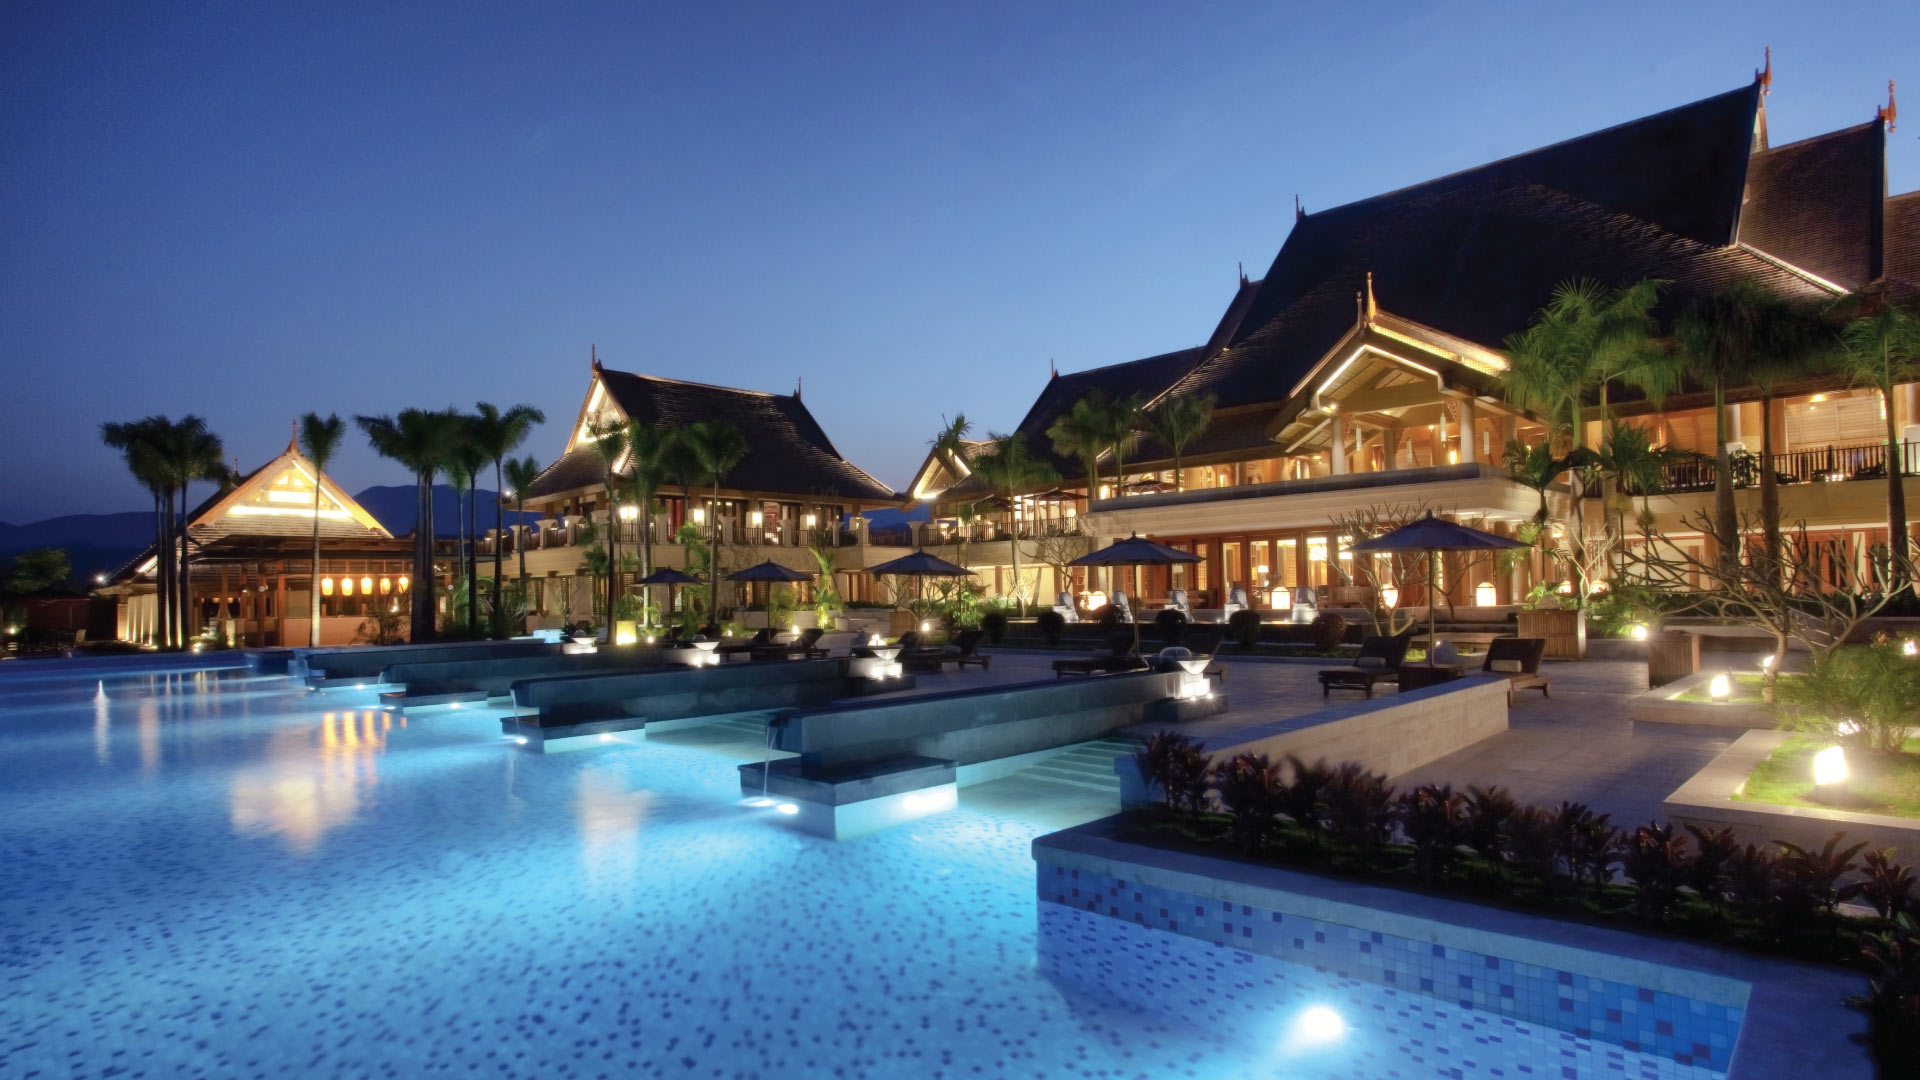 https://assets.anantara.com/image/upload/q_auto/media/minor/anantara/images/anantara-xishuangbanna-resort/the-resort/desktop-banner/anantara_xishuangbanna_exterior_banner_1920x1080.jpg